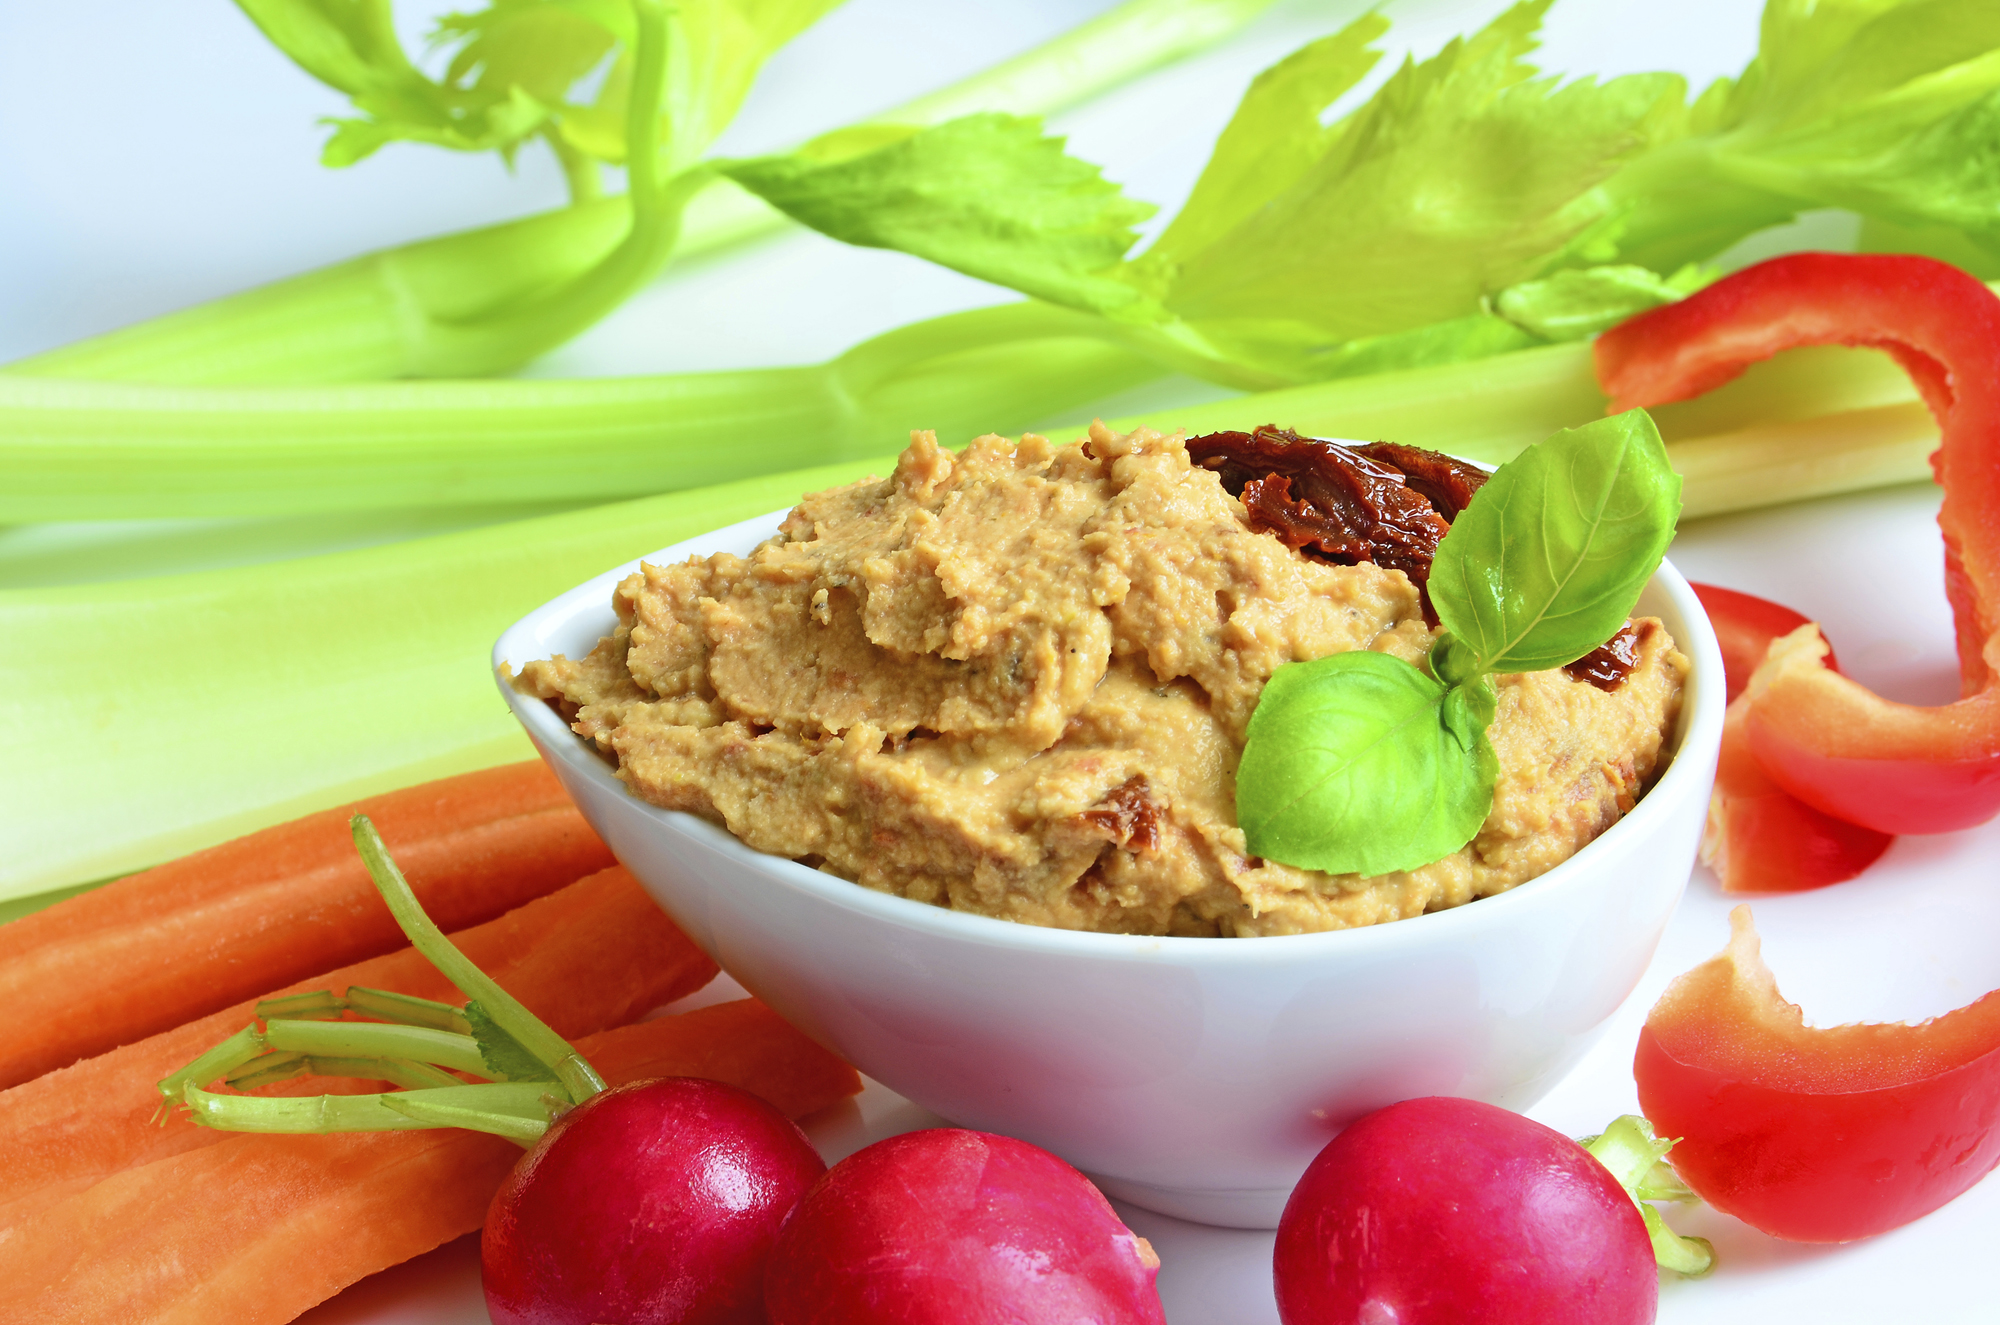 12 quick and healthy pregnancy snacks  healthy ideas for kids